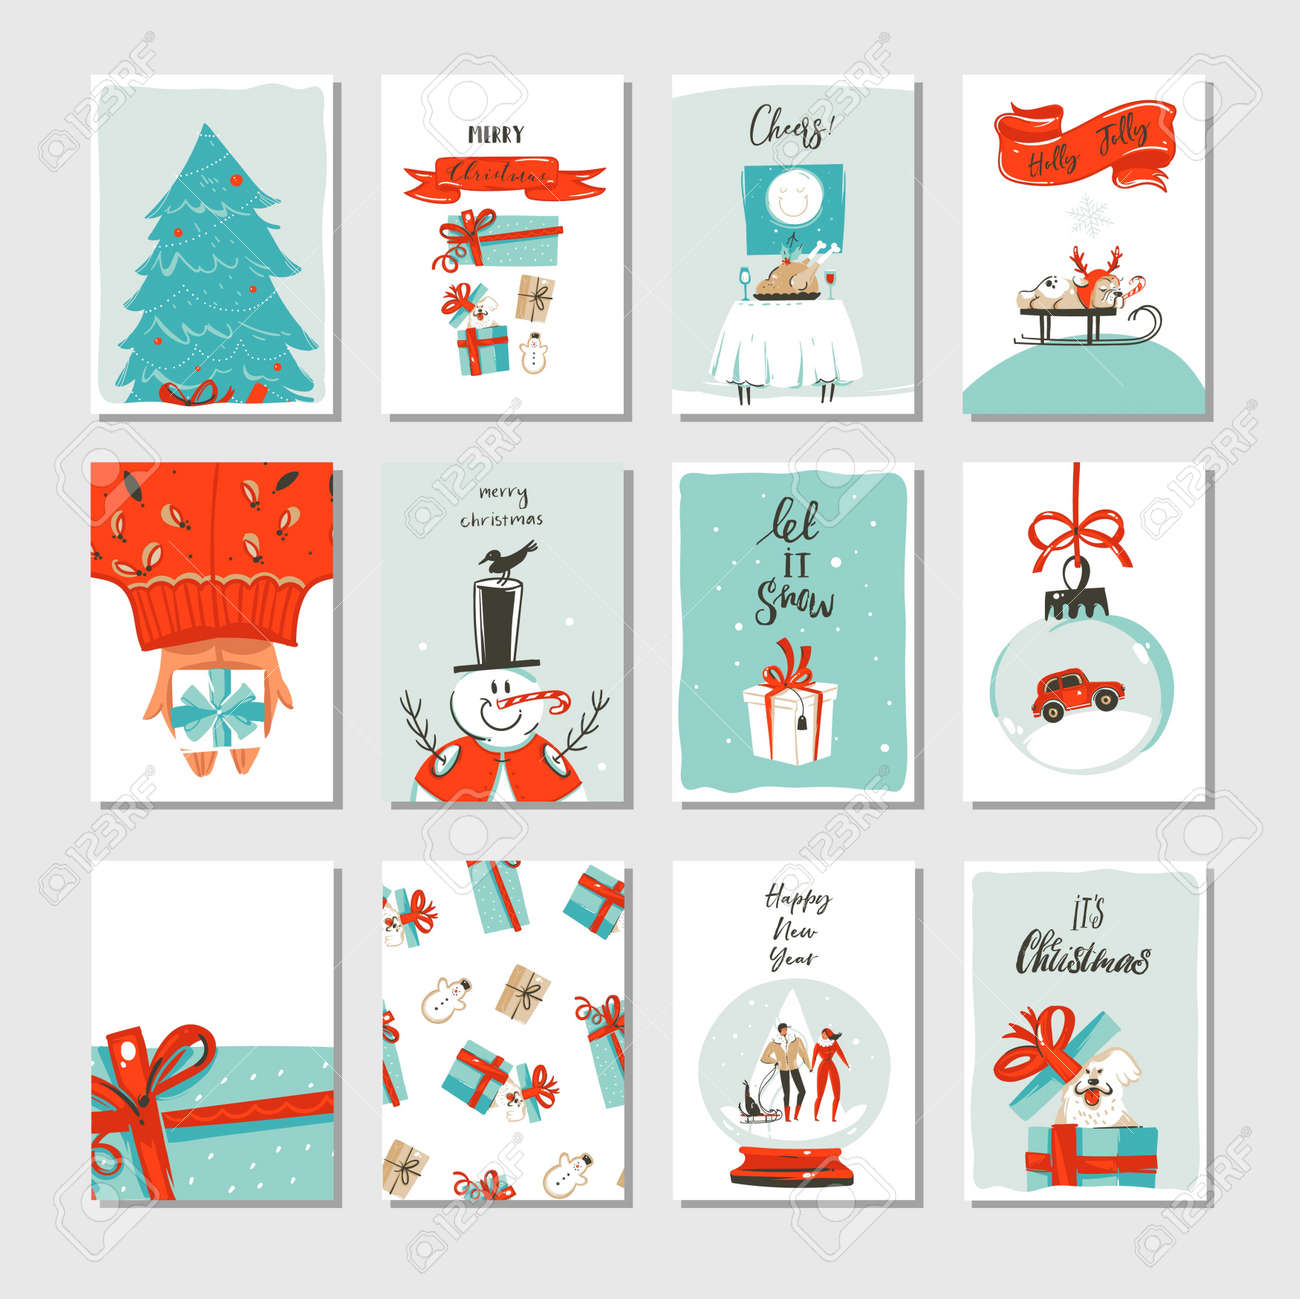 Hand drawn vector abstract fun Merry Christmas time cartoon cards collection set with cute illustrations,surprise gift boxes ,Xmas tree and modern calligraphy isolated on white background - 89963467